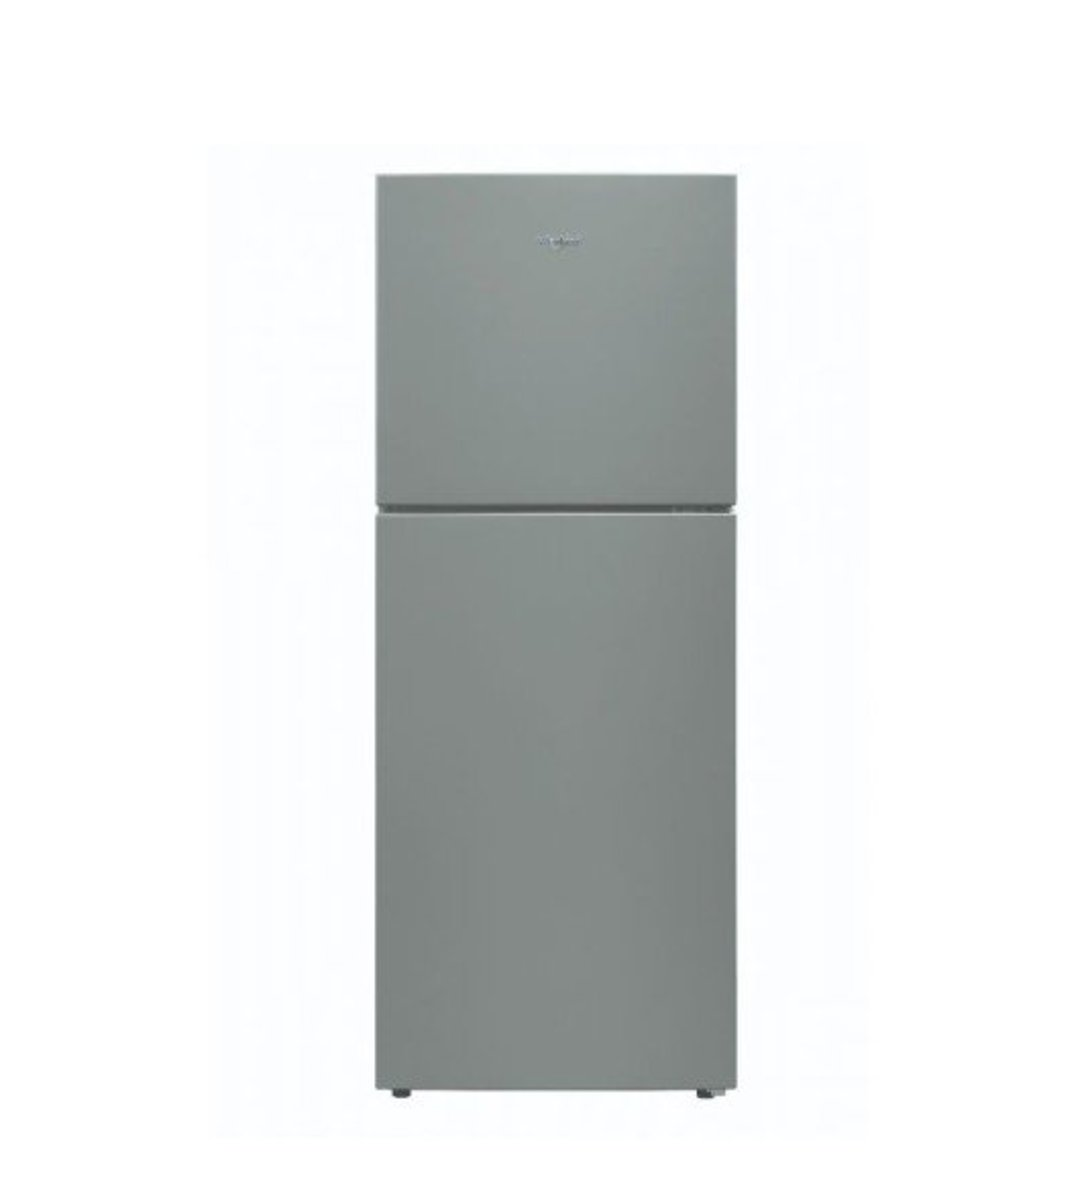 WF2T202LPS  Two-Door RefrigeratorTop Freezer( 207L)  [Left-hinge model]